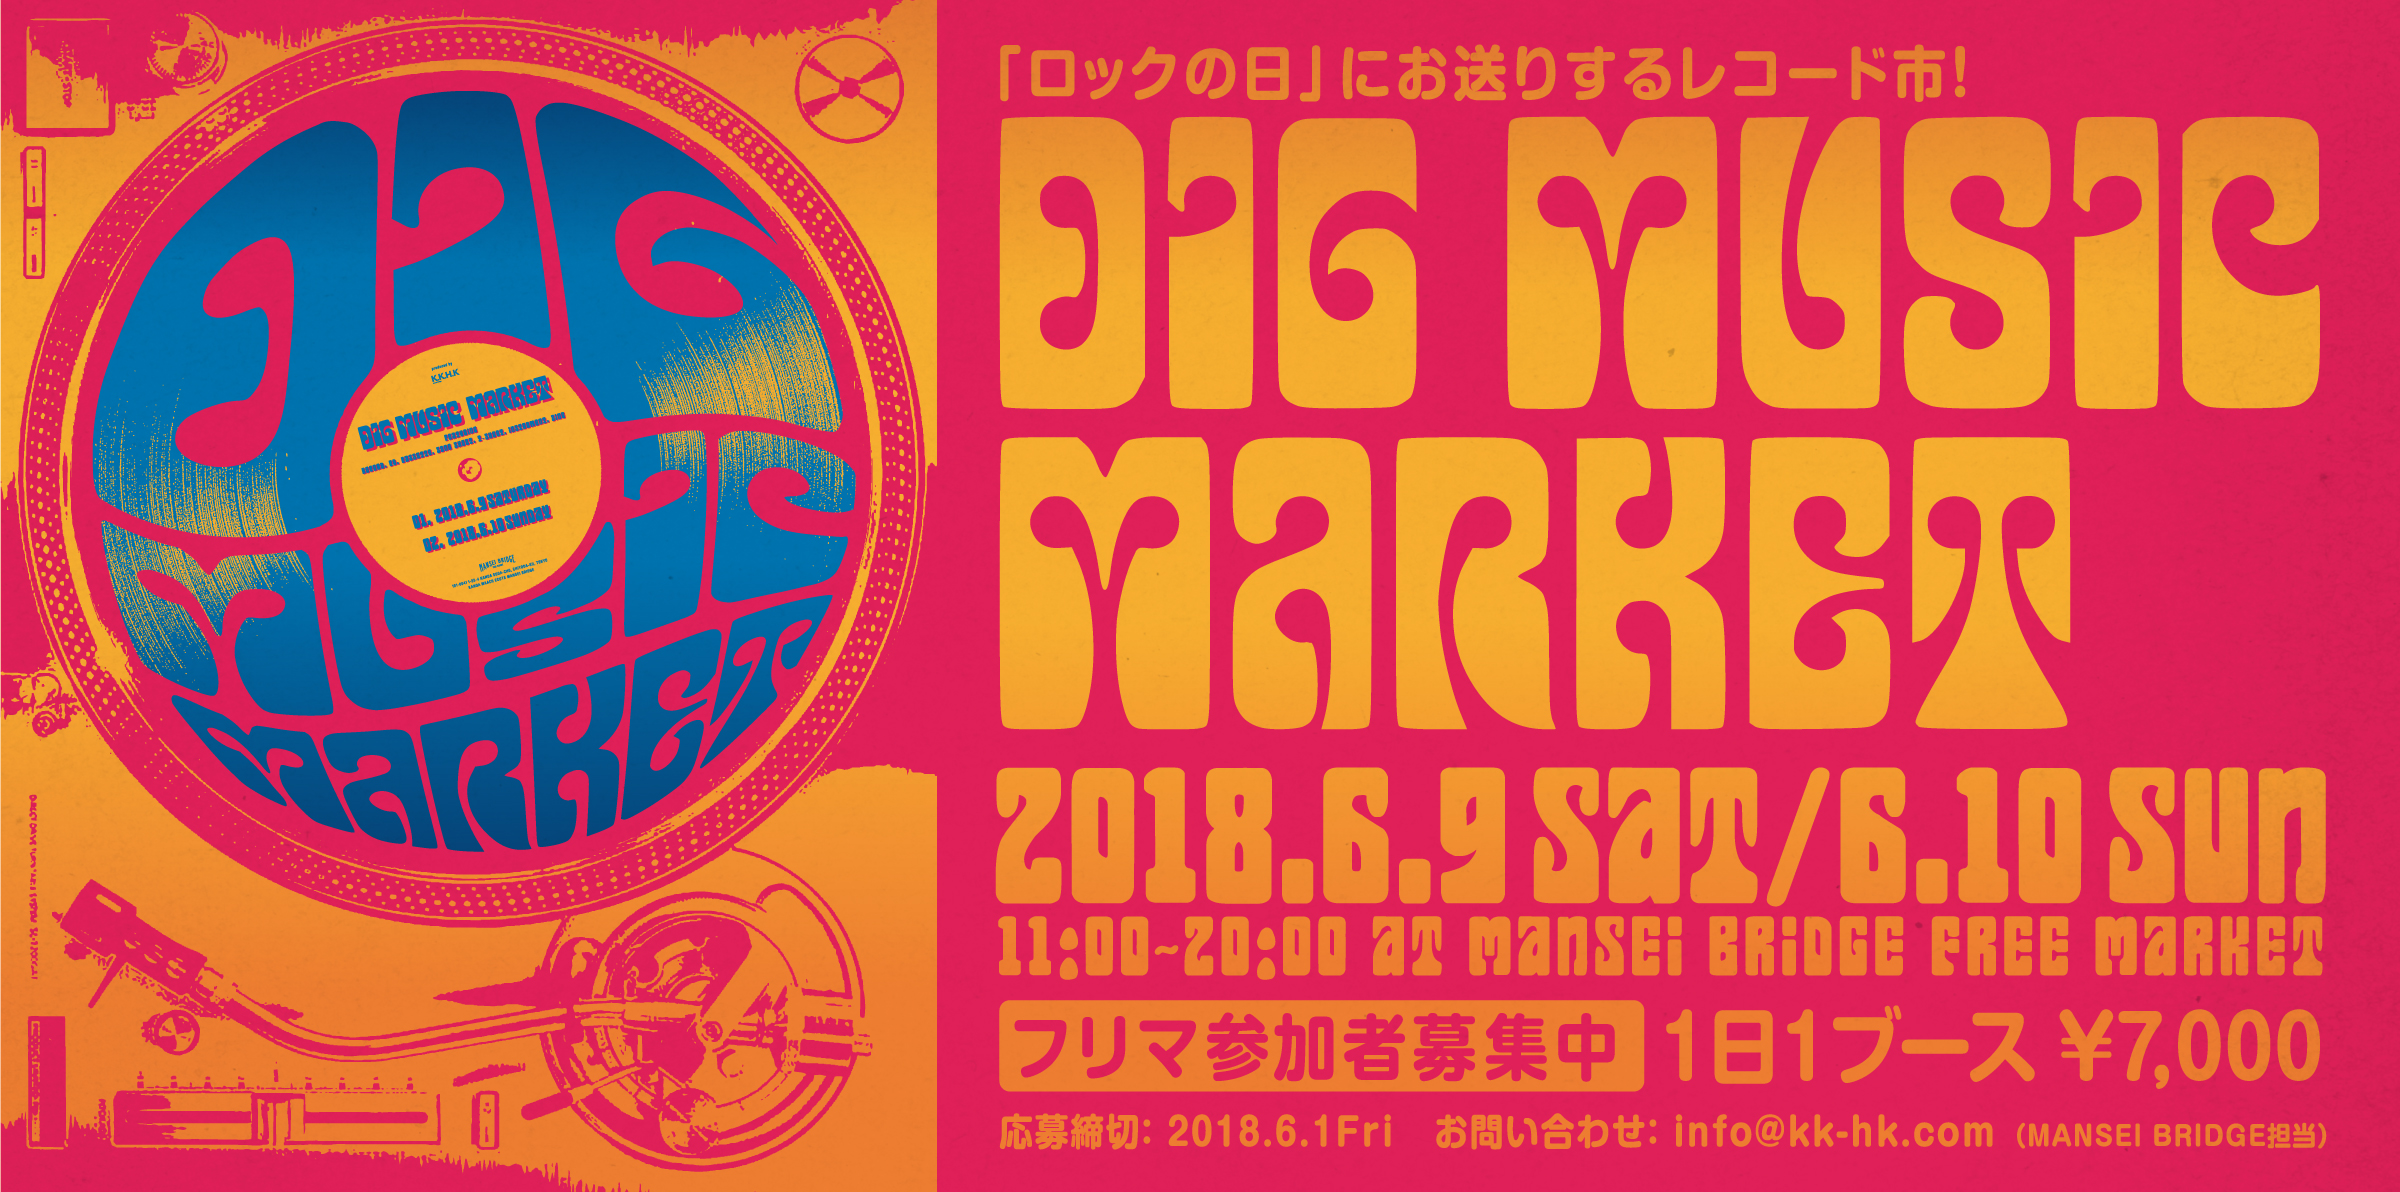 Dig music market 2400 1192 hp